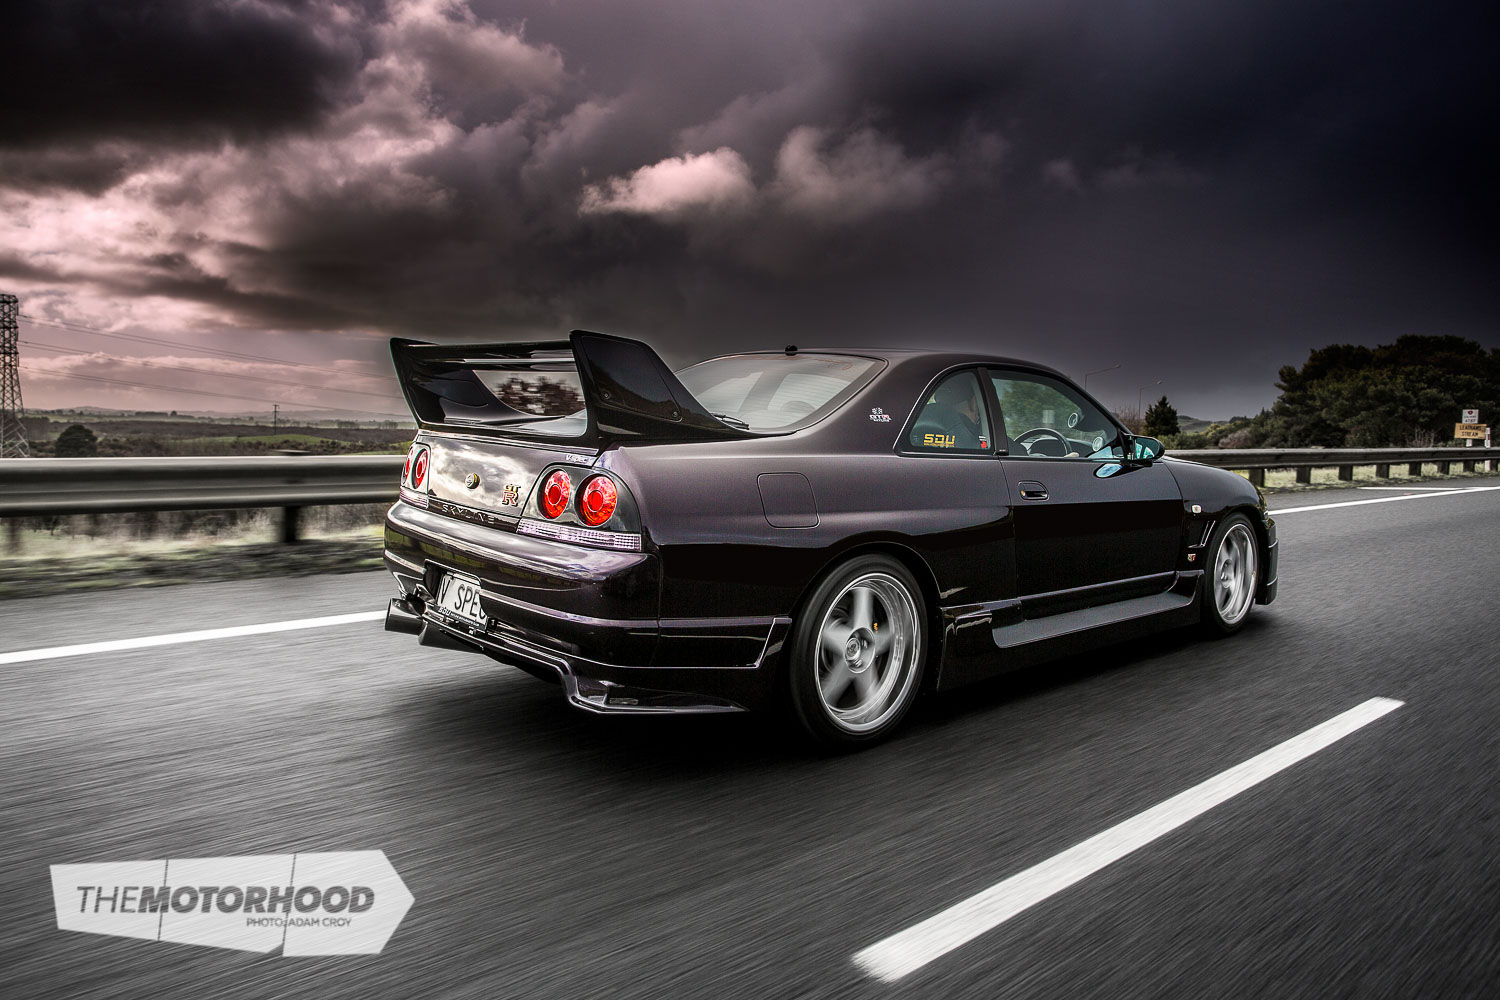 Godzilla's wrath: check out some midnight refinement — The Motorhood